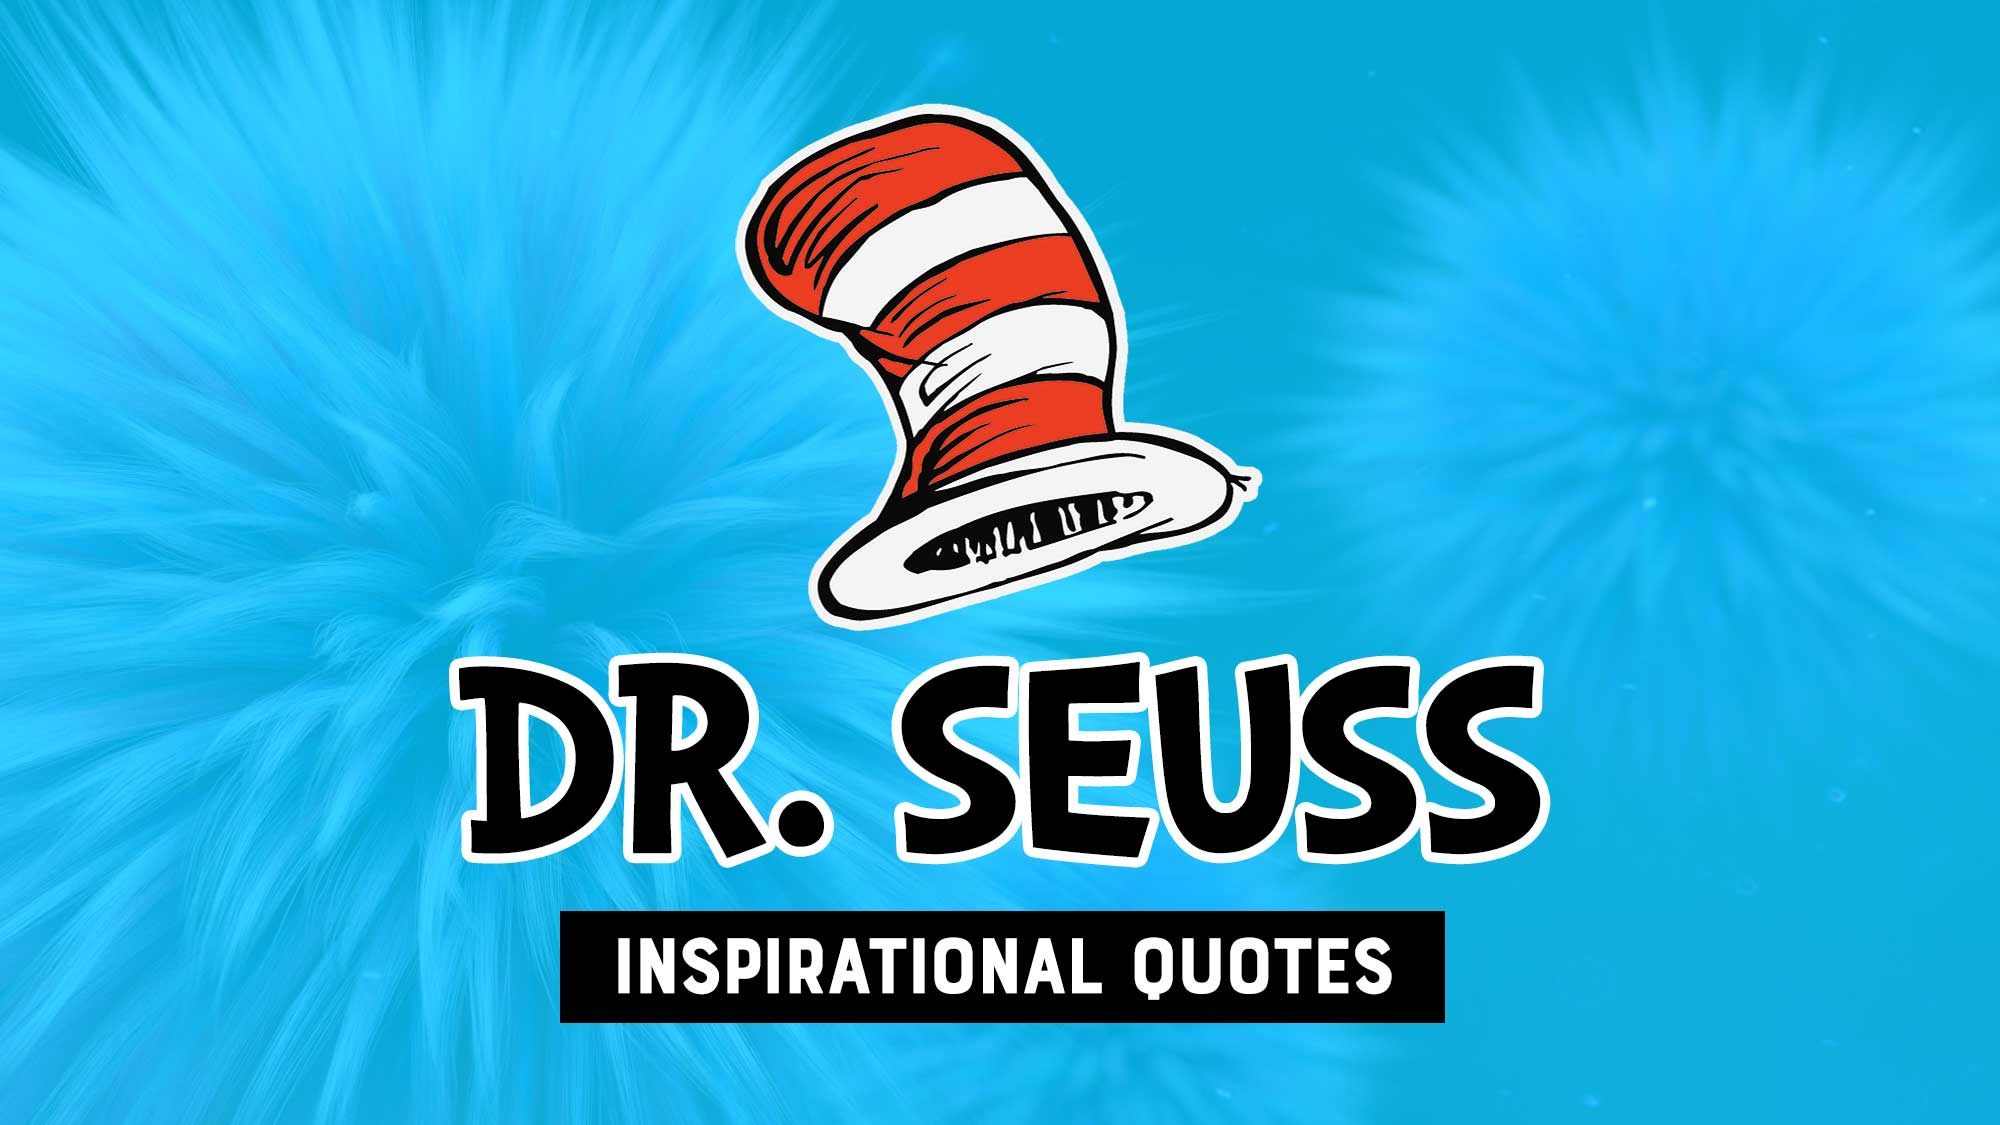 18 Inspirational Dr. Seuss Quotes To Help Motivate Your Life